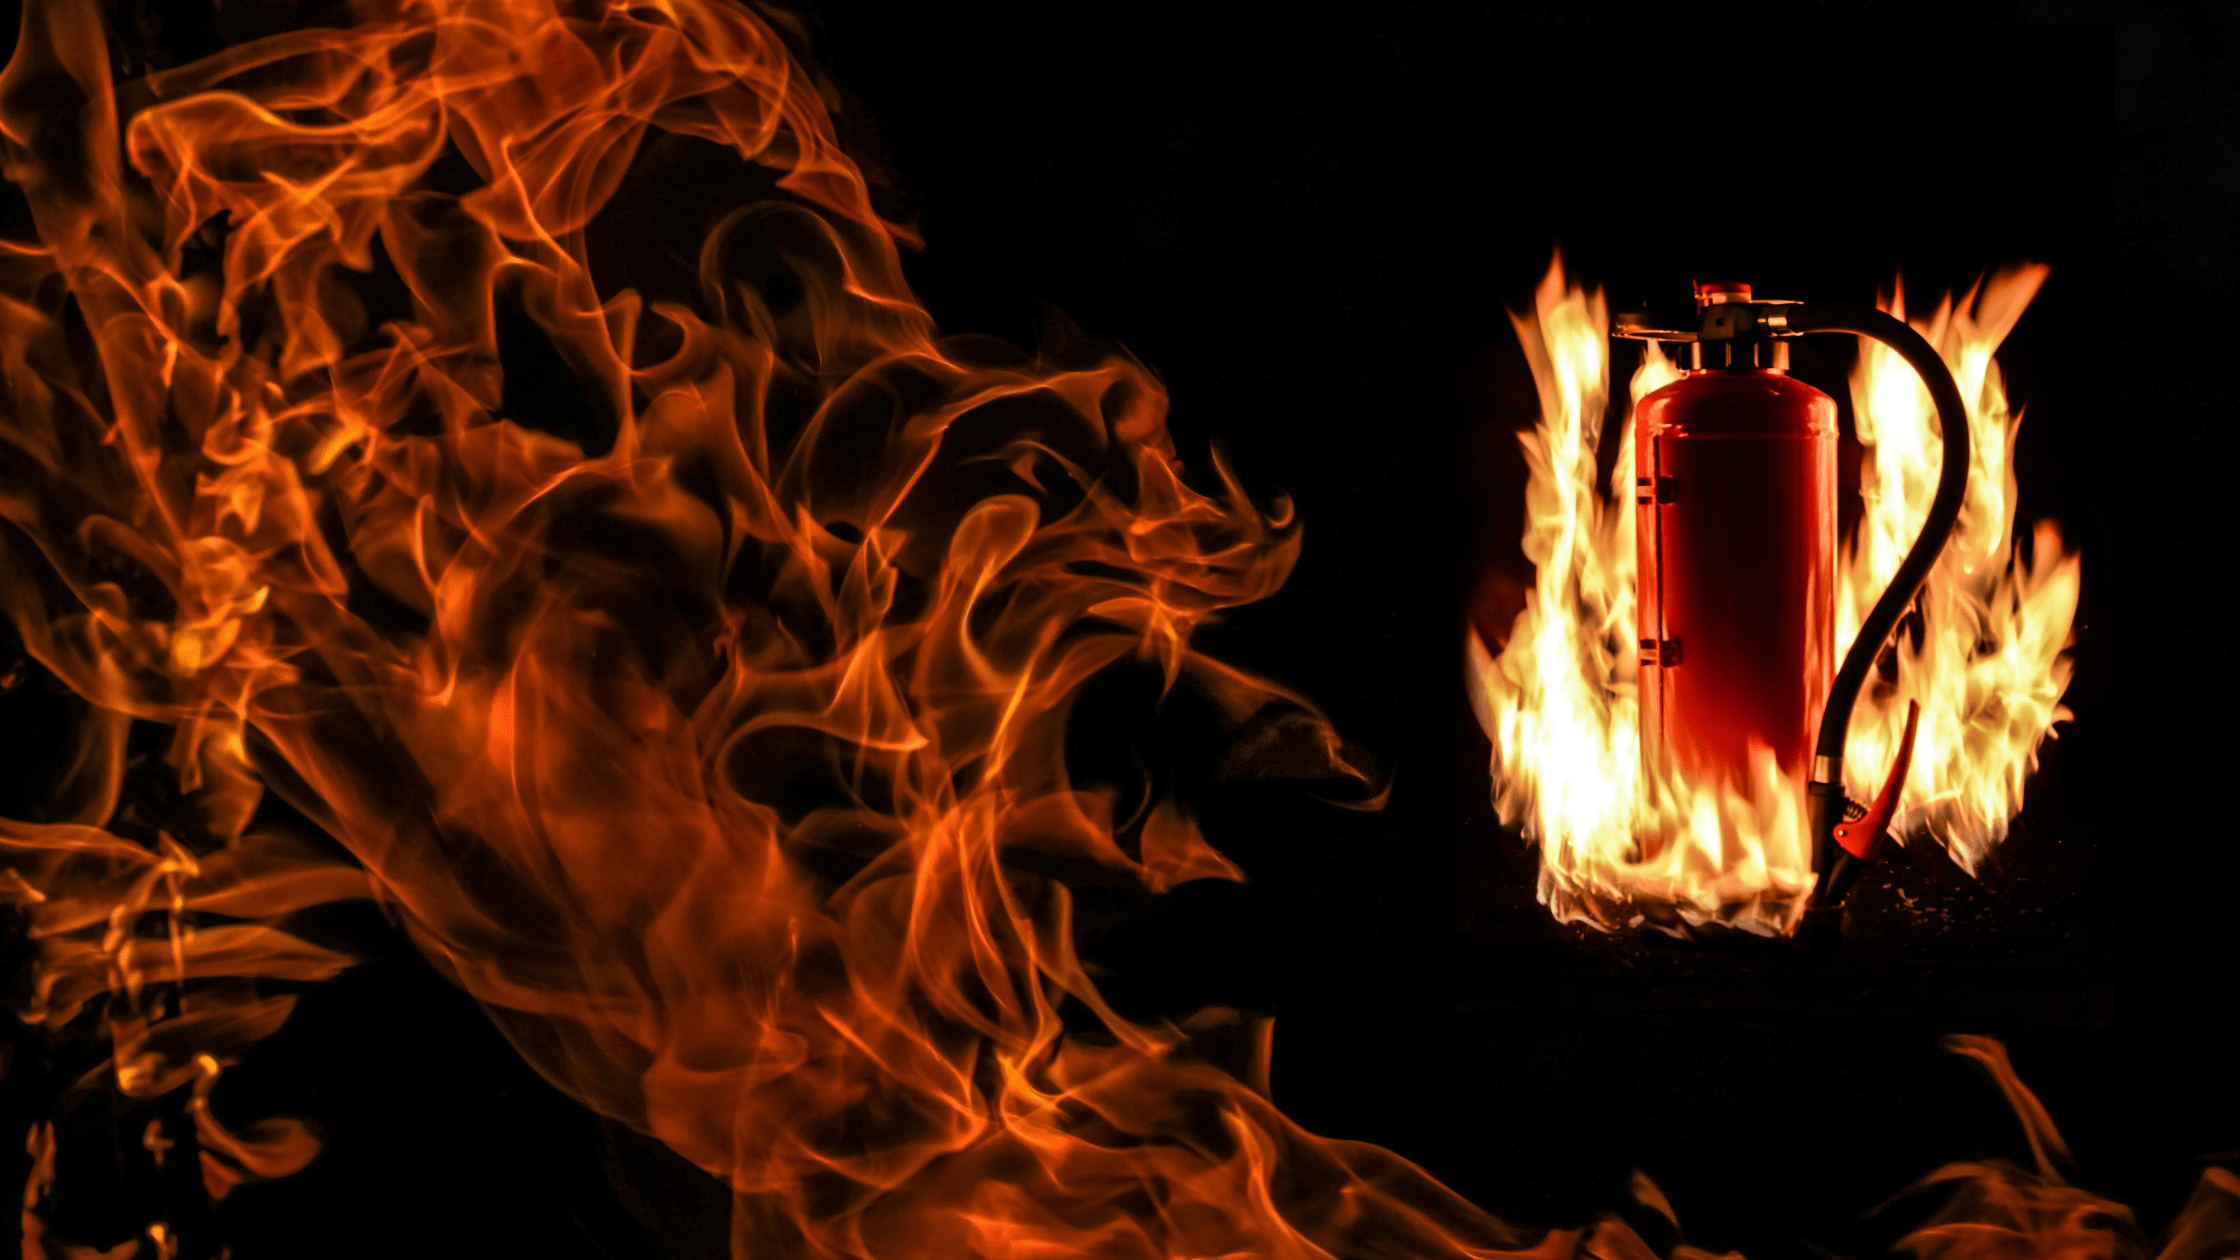 Read more about the article Know Your Fire Classifications, It Can Save Your Life.